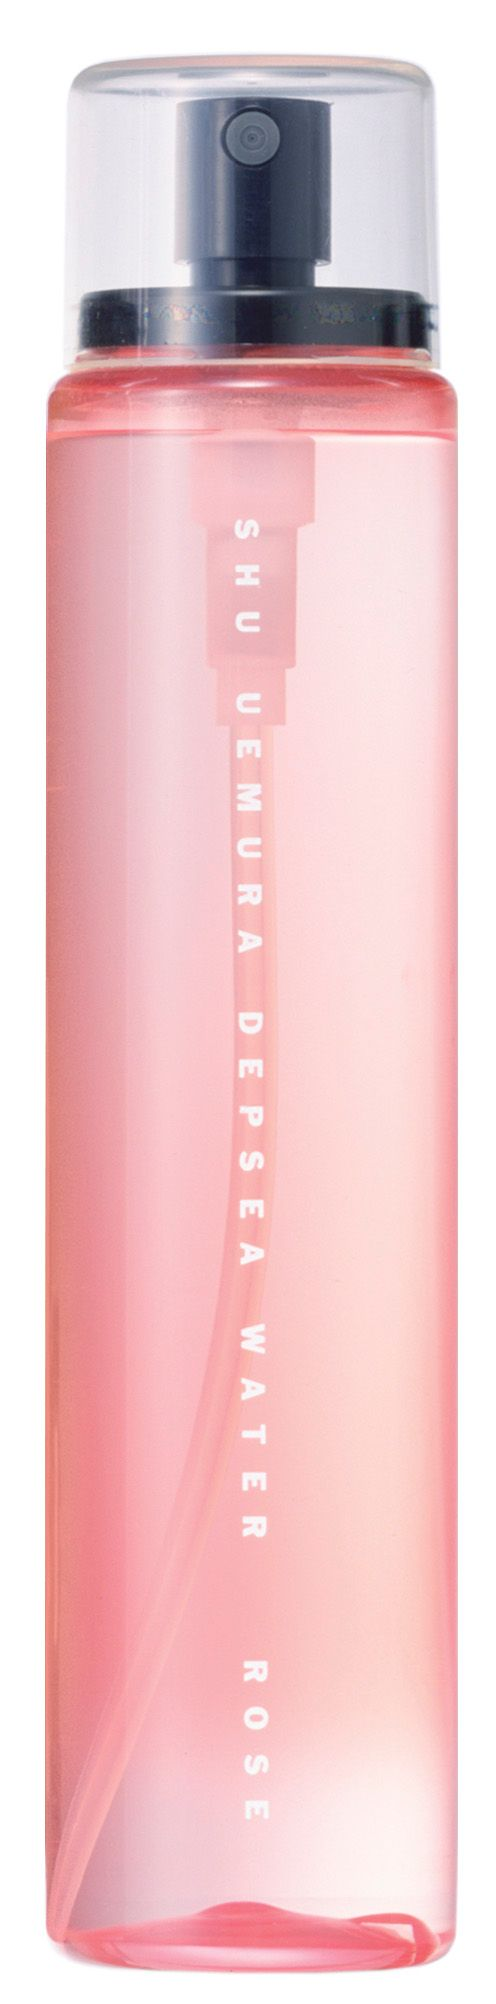 Deepsea Water Facial Mist Rose 150ml